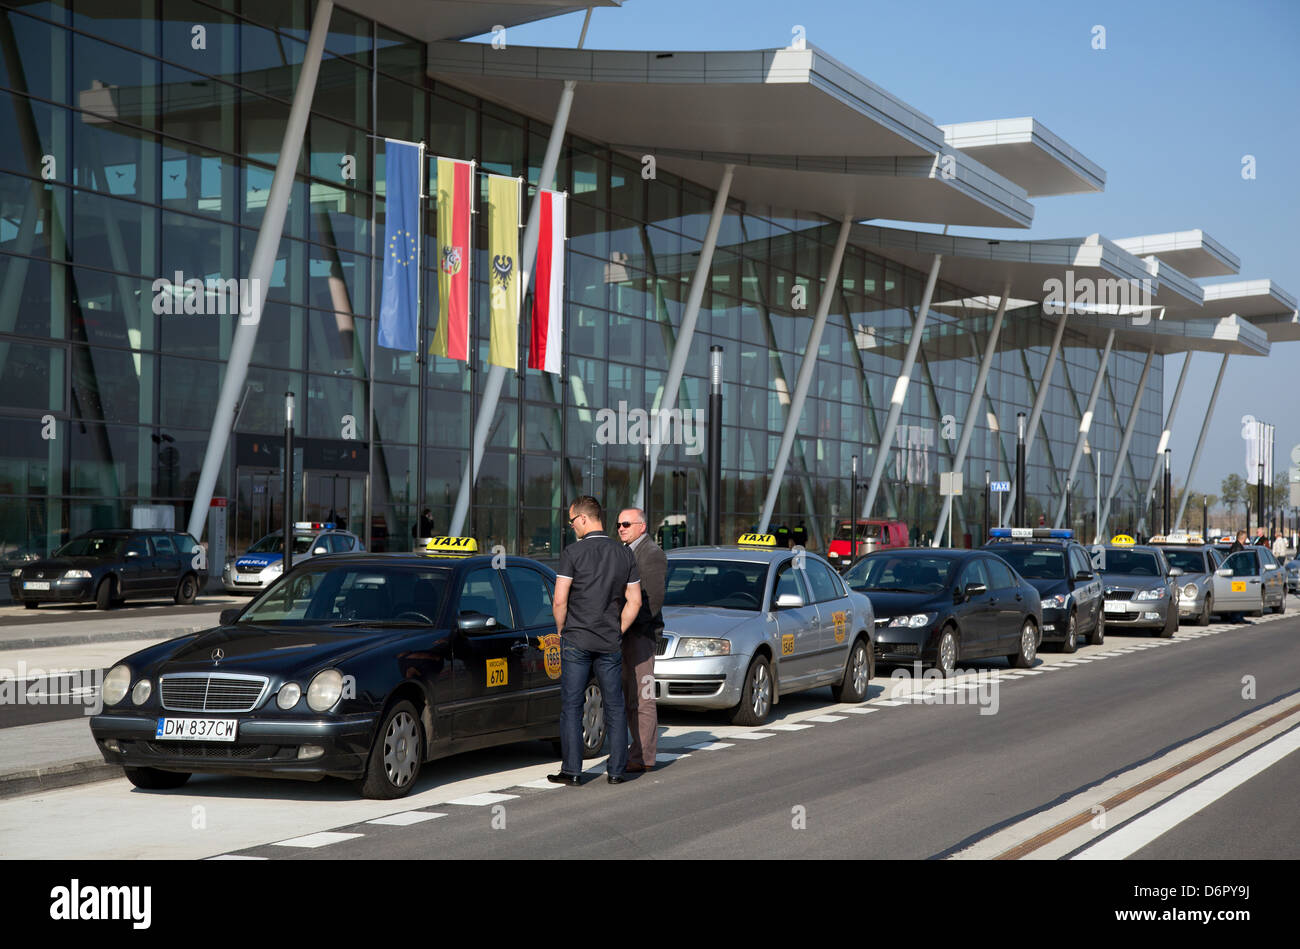 Wroclaw Airport Stock Photos Wroclaw Airport Stock Images Alamy